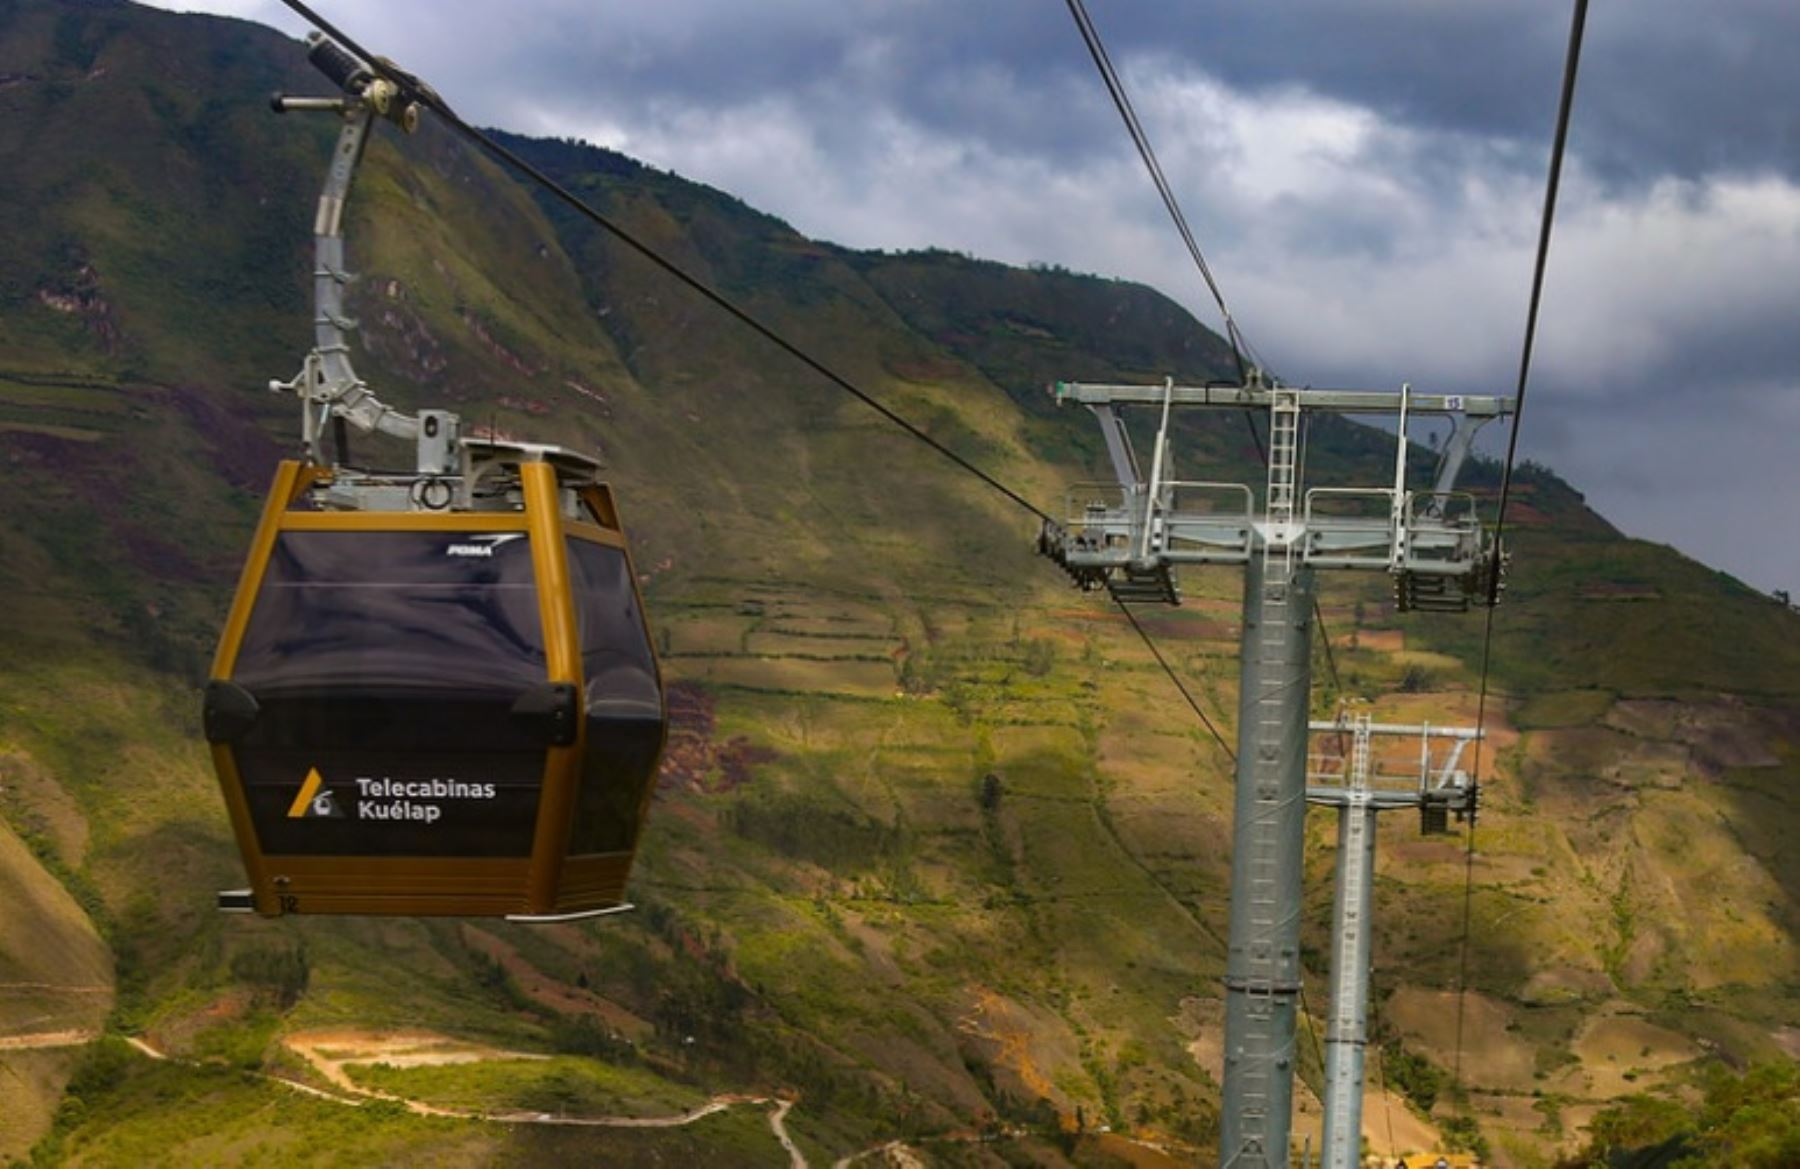 Kuelap Cable Car Cost